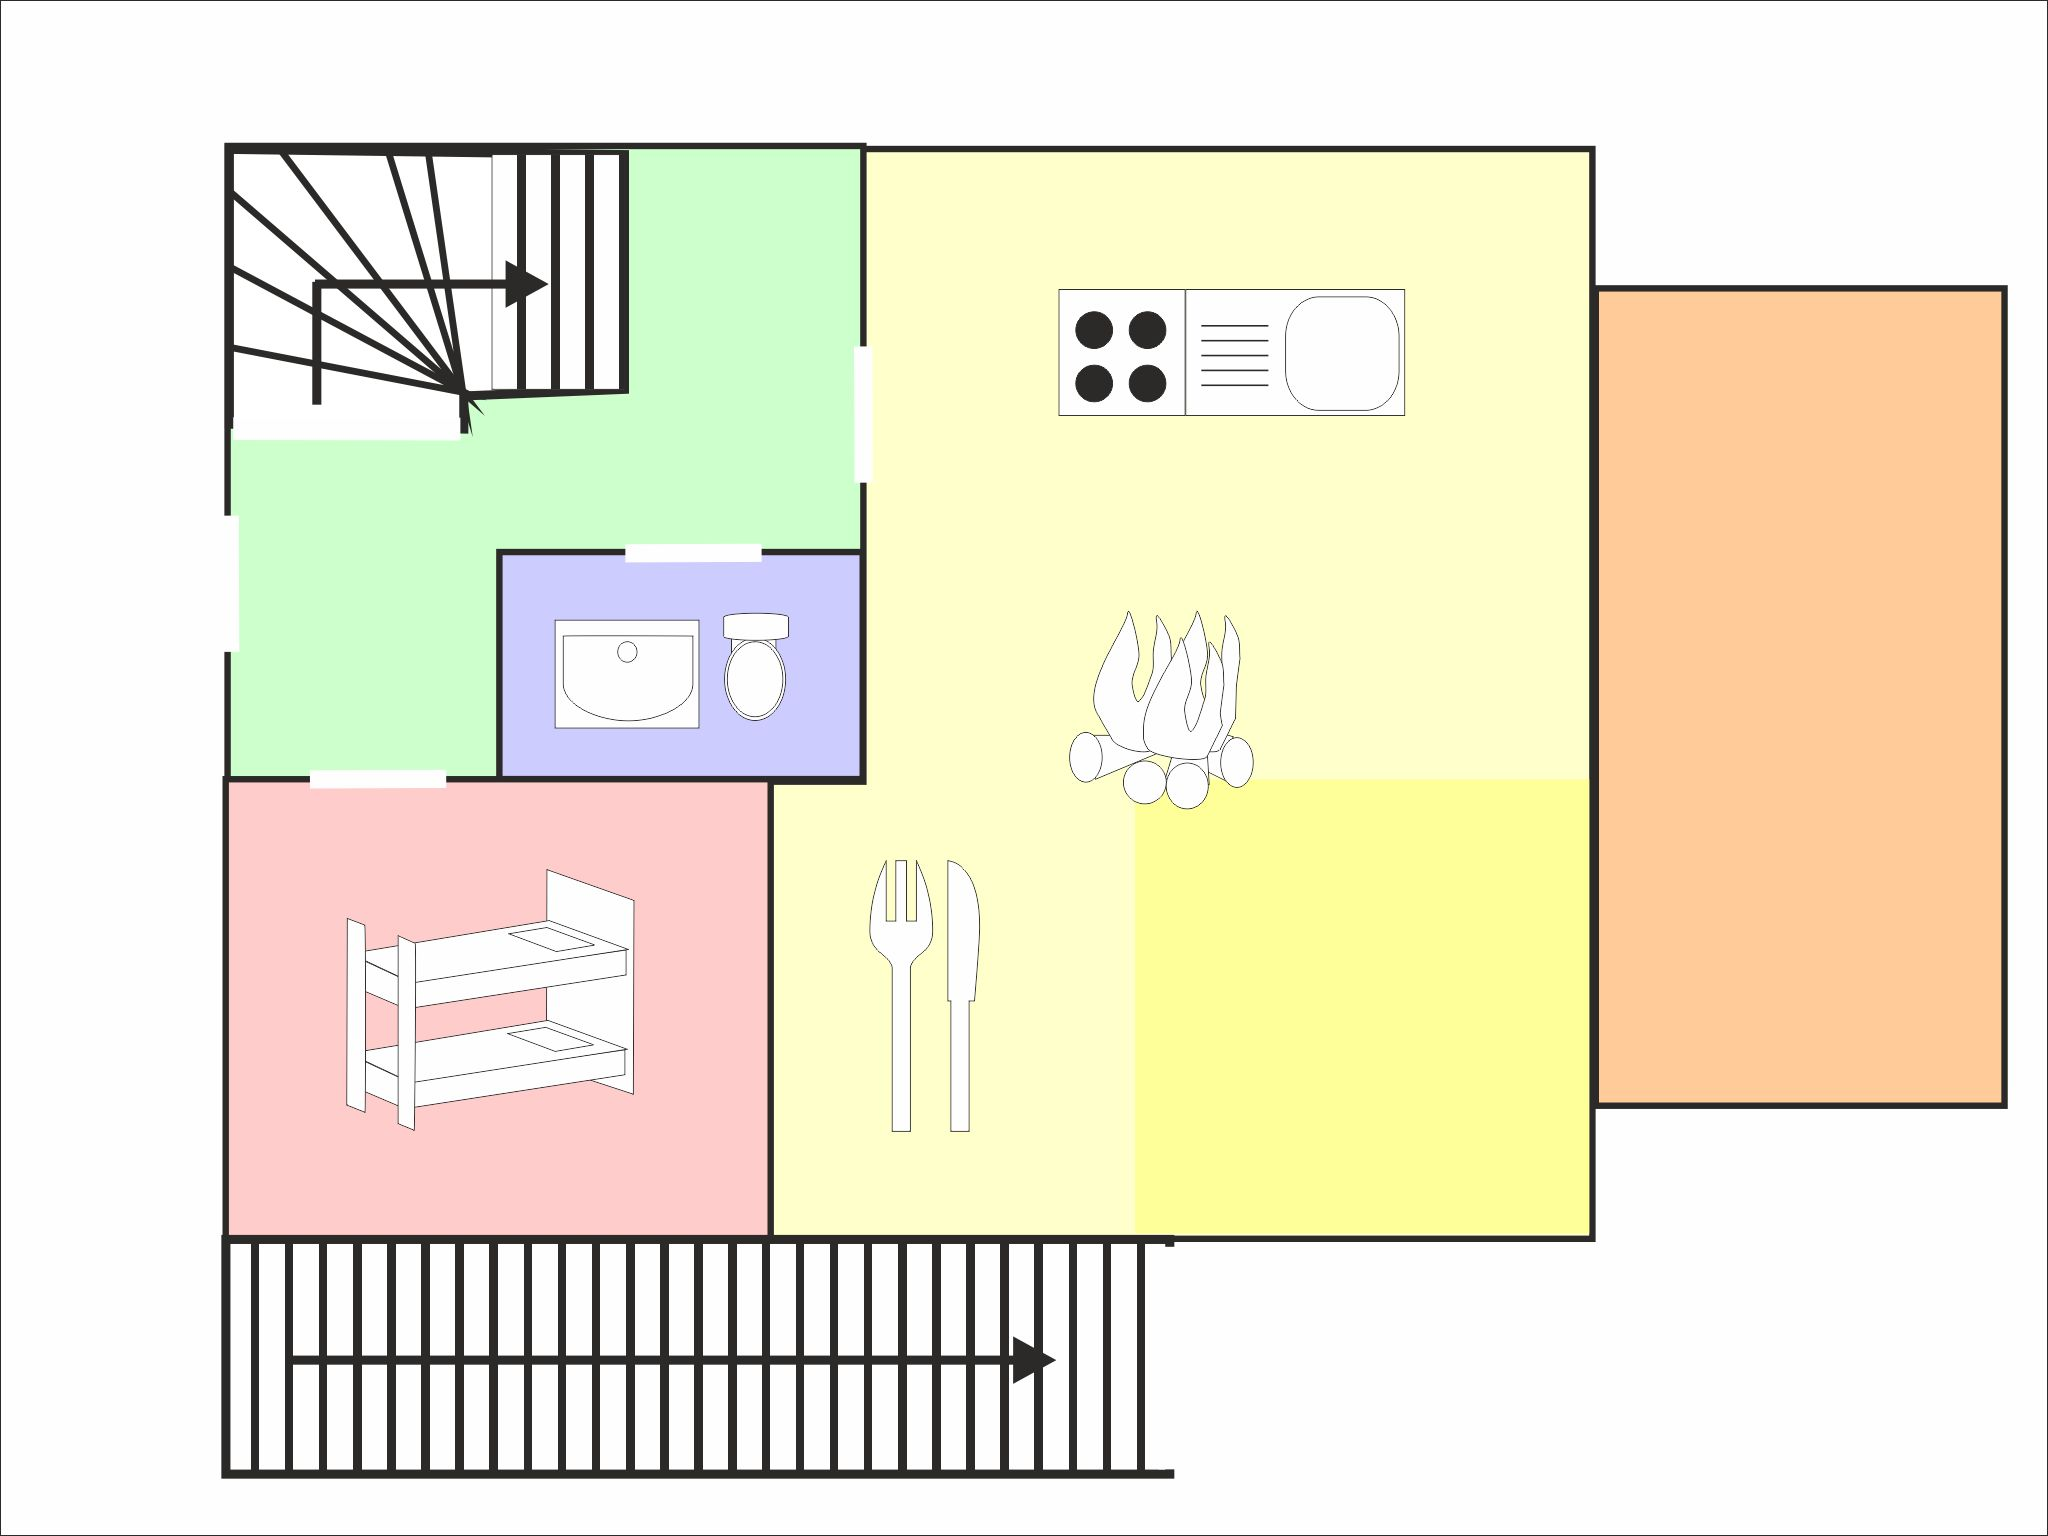 Mountain Lodge Leogang - floor plan - level 1